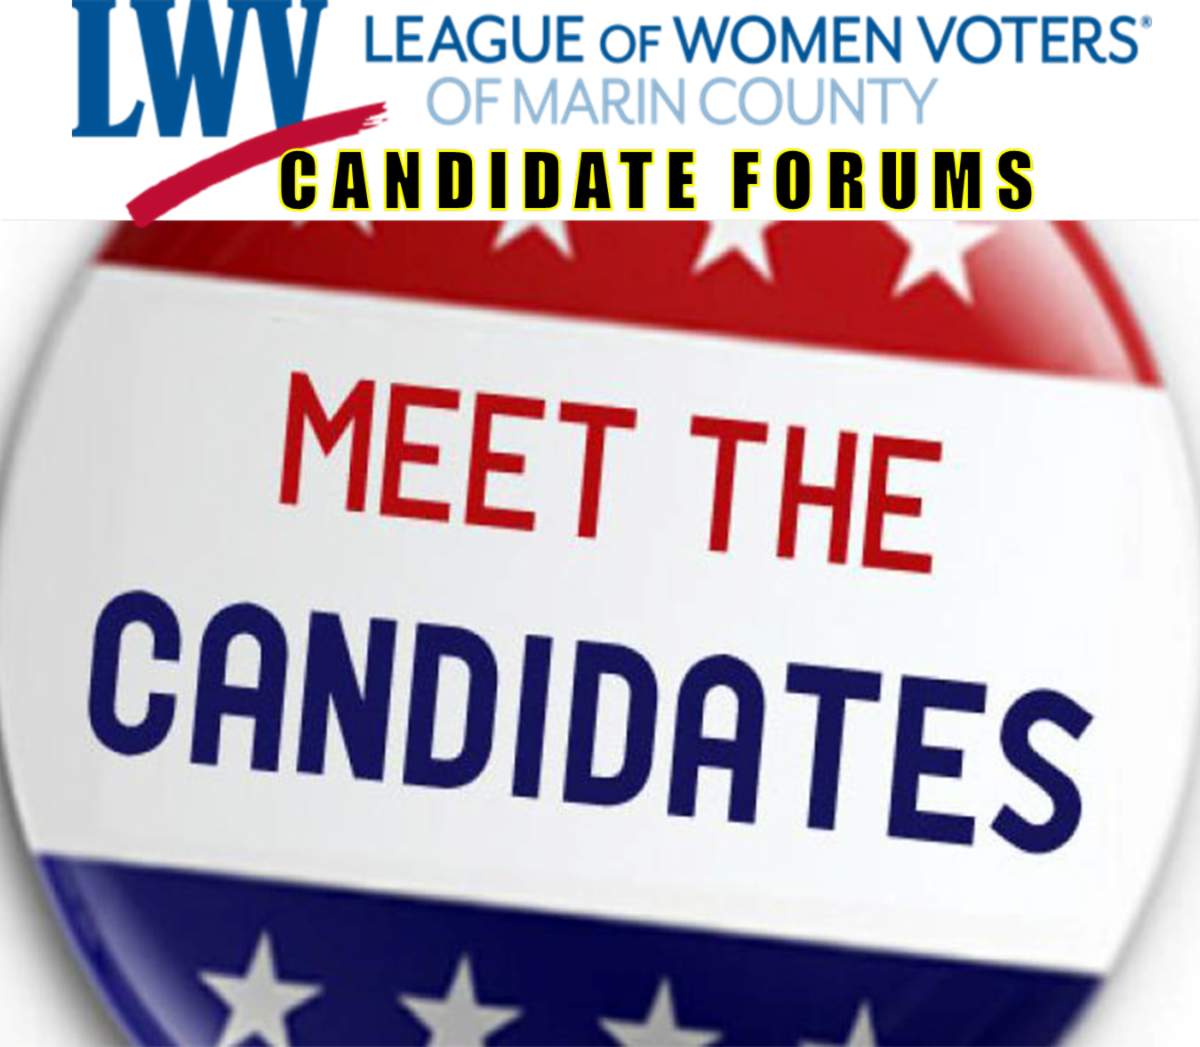 Red, white, and blue pin with stars and the words LWV League of Women Voters of Marin County Candidate Forums: Meet the Candidates